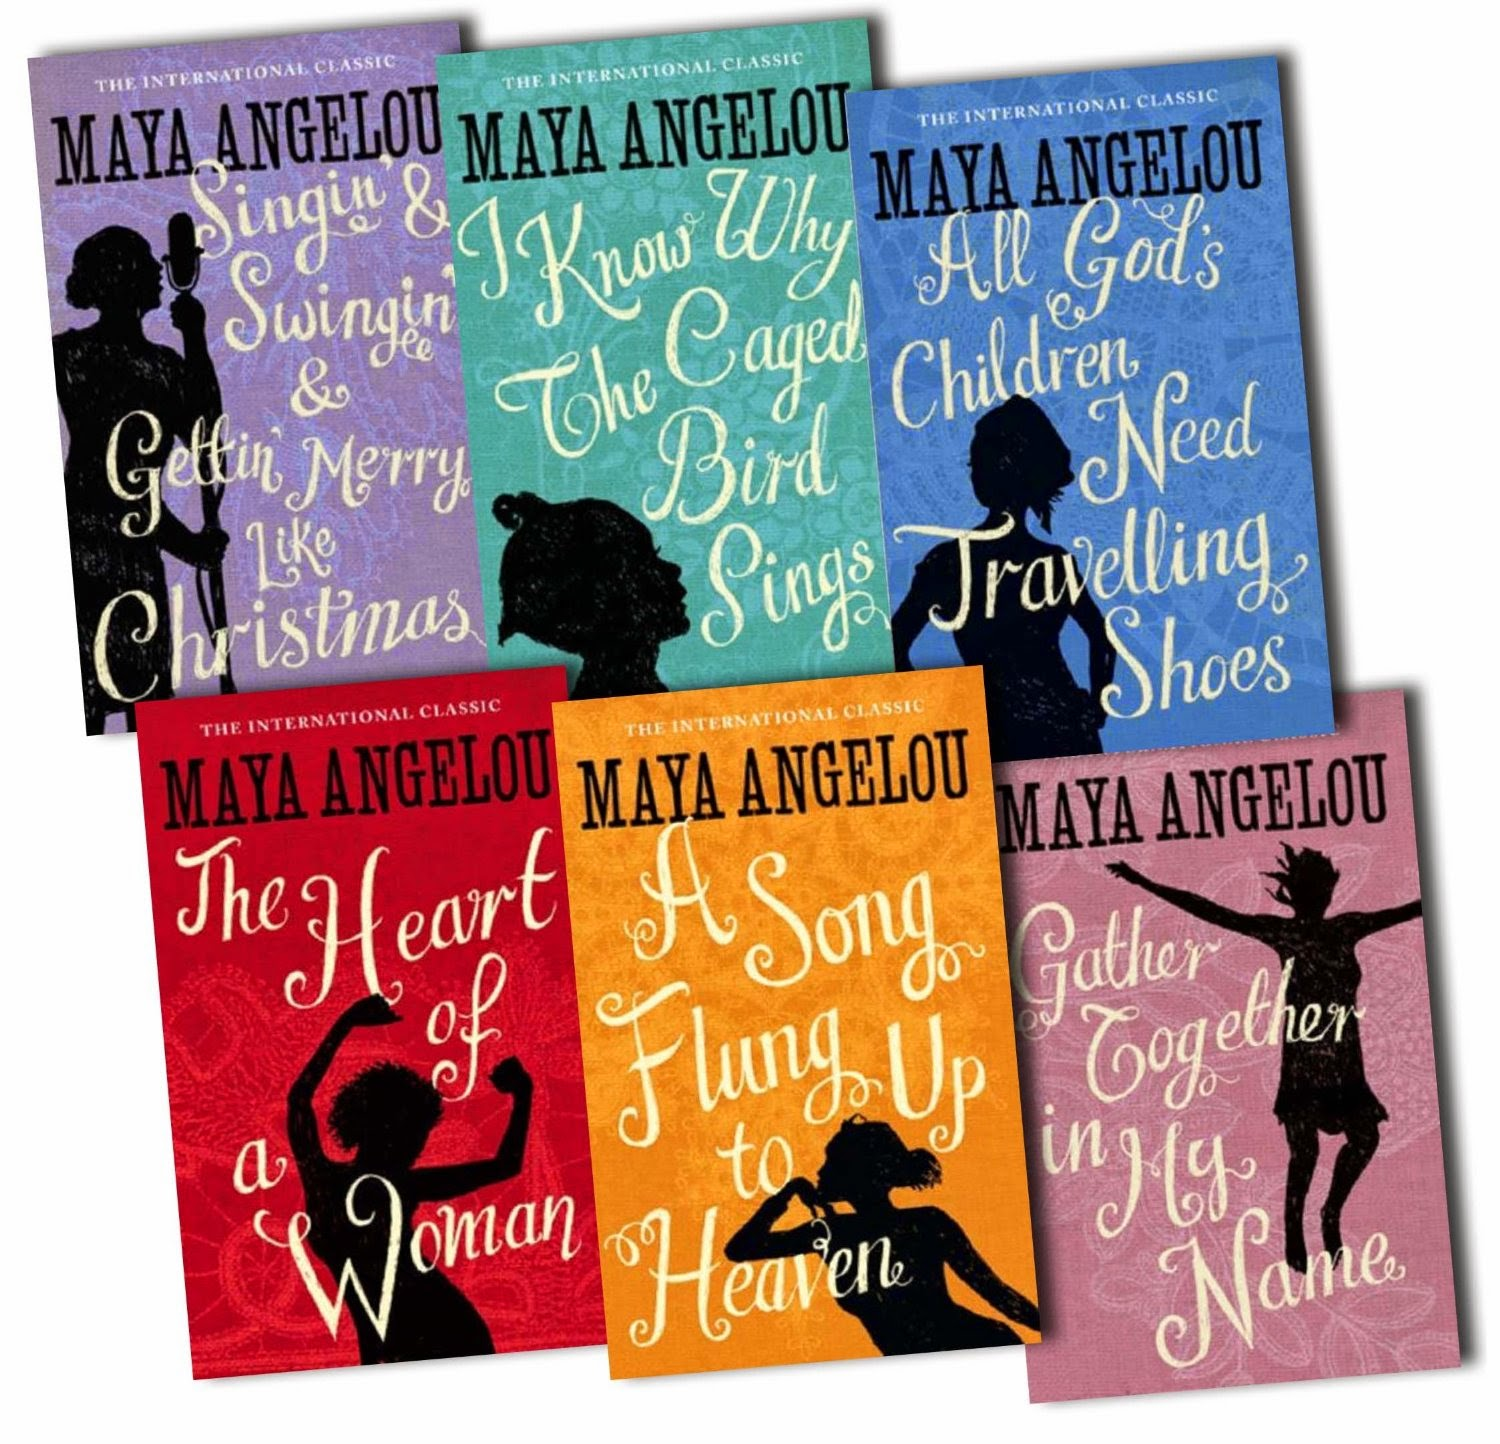 a report on the writings of maya angelou The collected autobiographies of maya angelou maya angelou: a glorious celebration children life doesn't frighten me my painted house, my friendly chicken, and me.